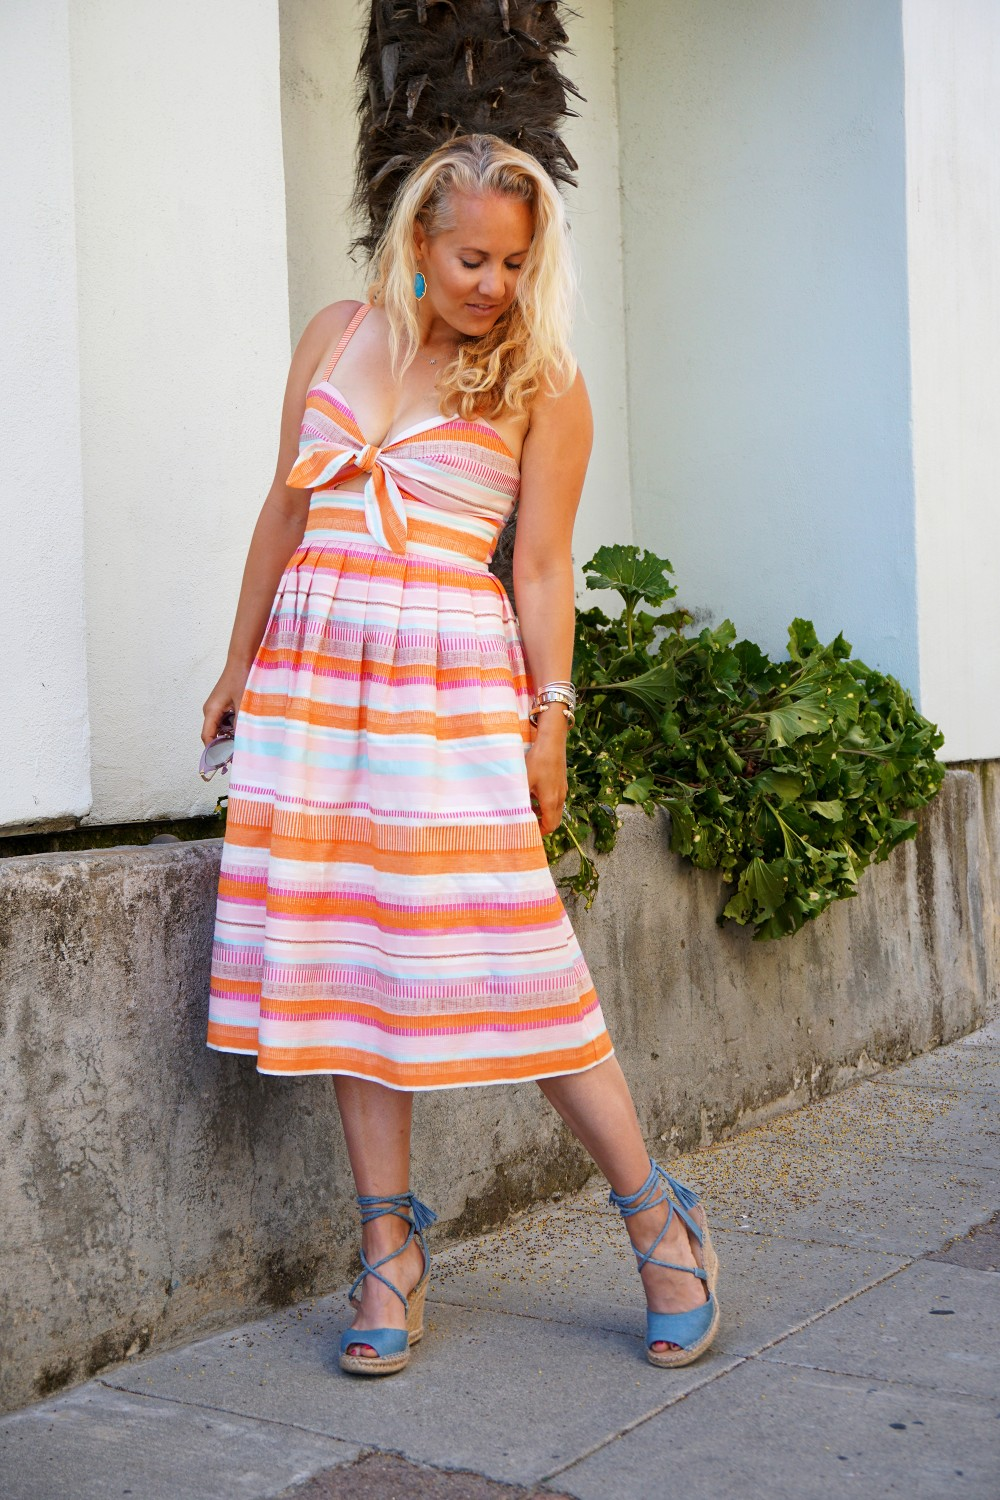 Spring Stripe Dress-Stripes and Cut Outs-Outfit Inspiration-Bay Area Blogger-Summer Dress-Sunday Best Outfit Inspiration-Have Need Want 5